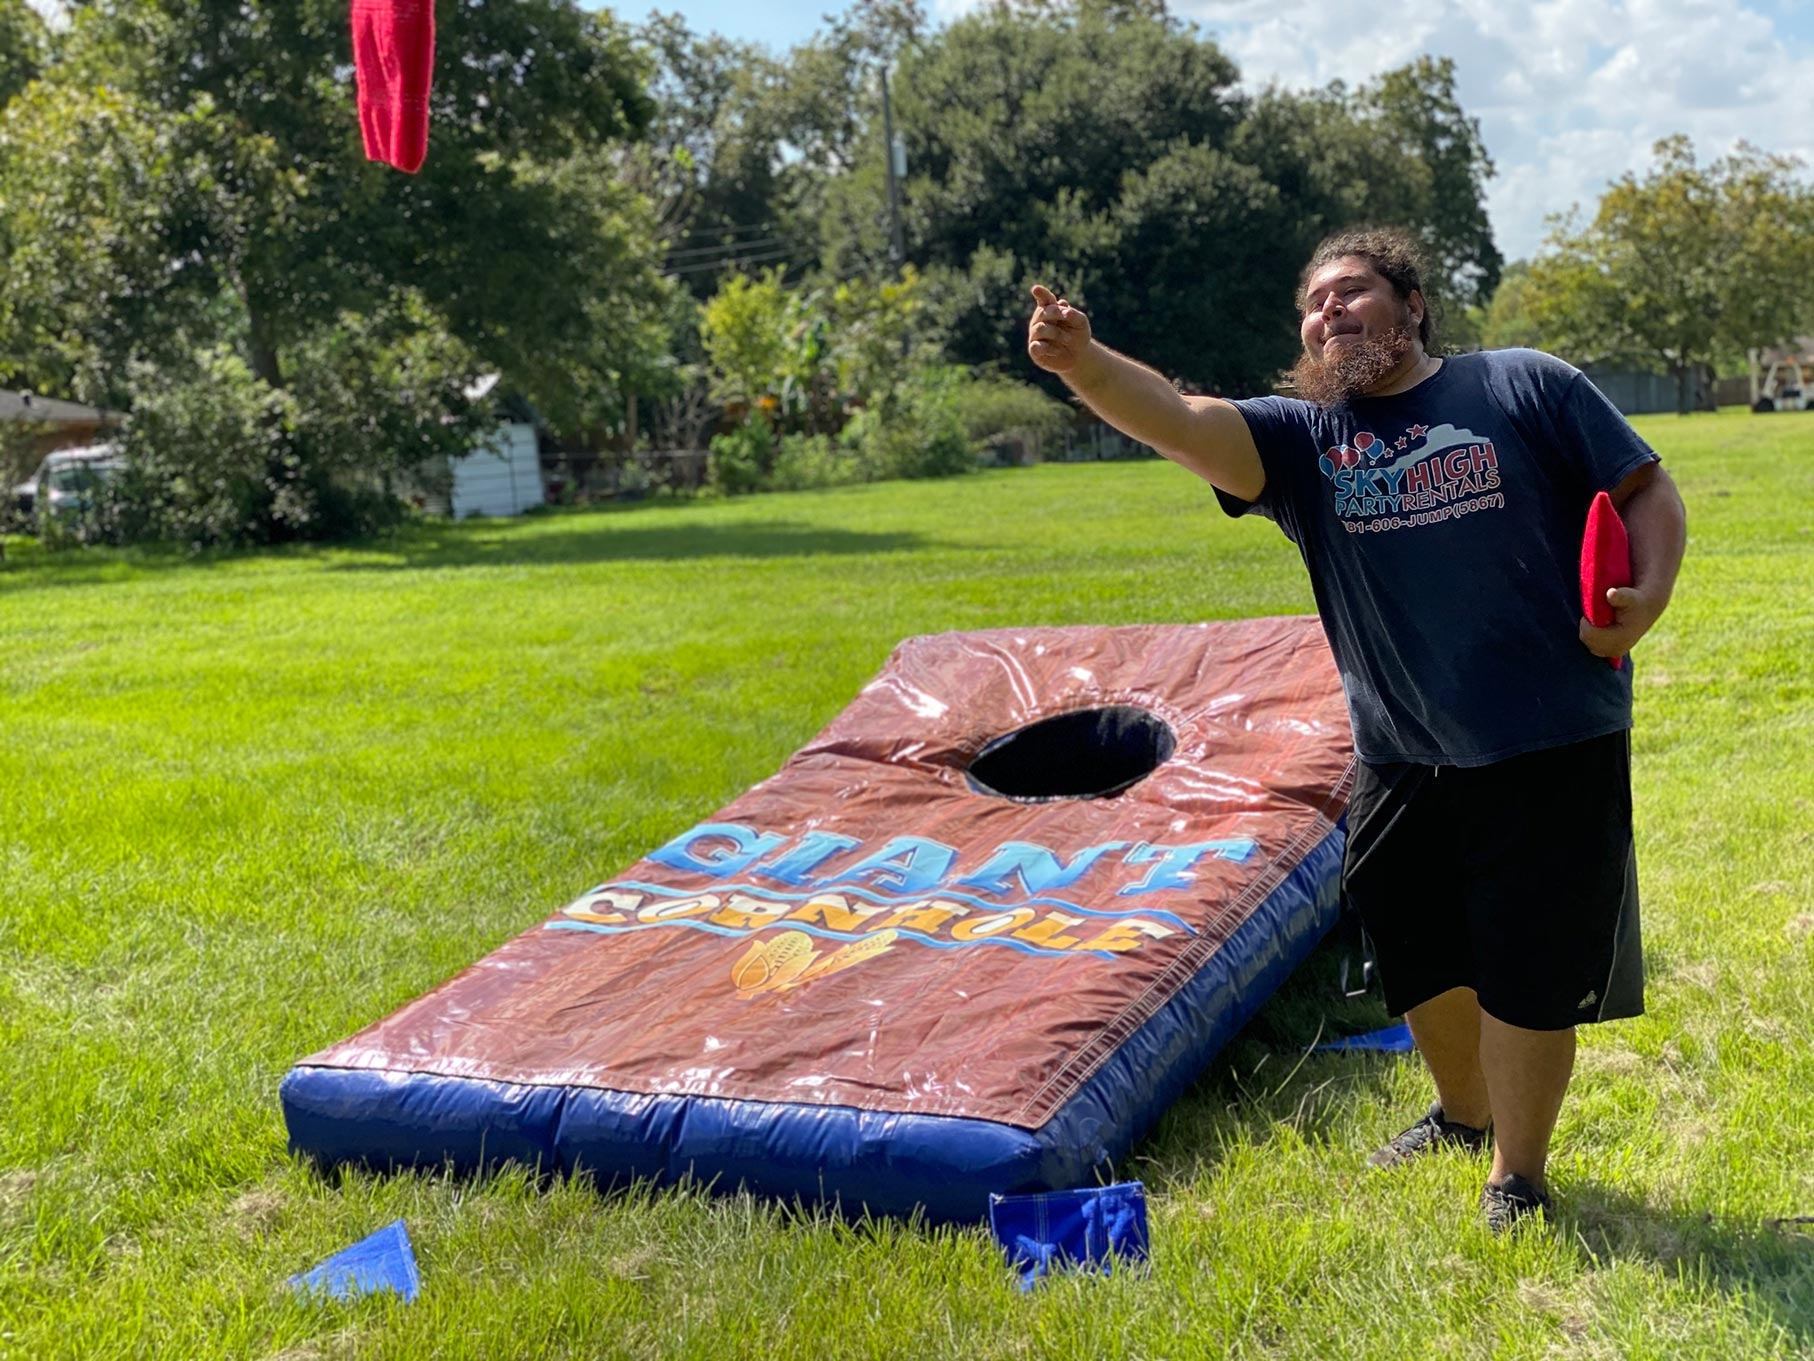 Corn Hole Rentals Giant